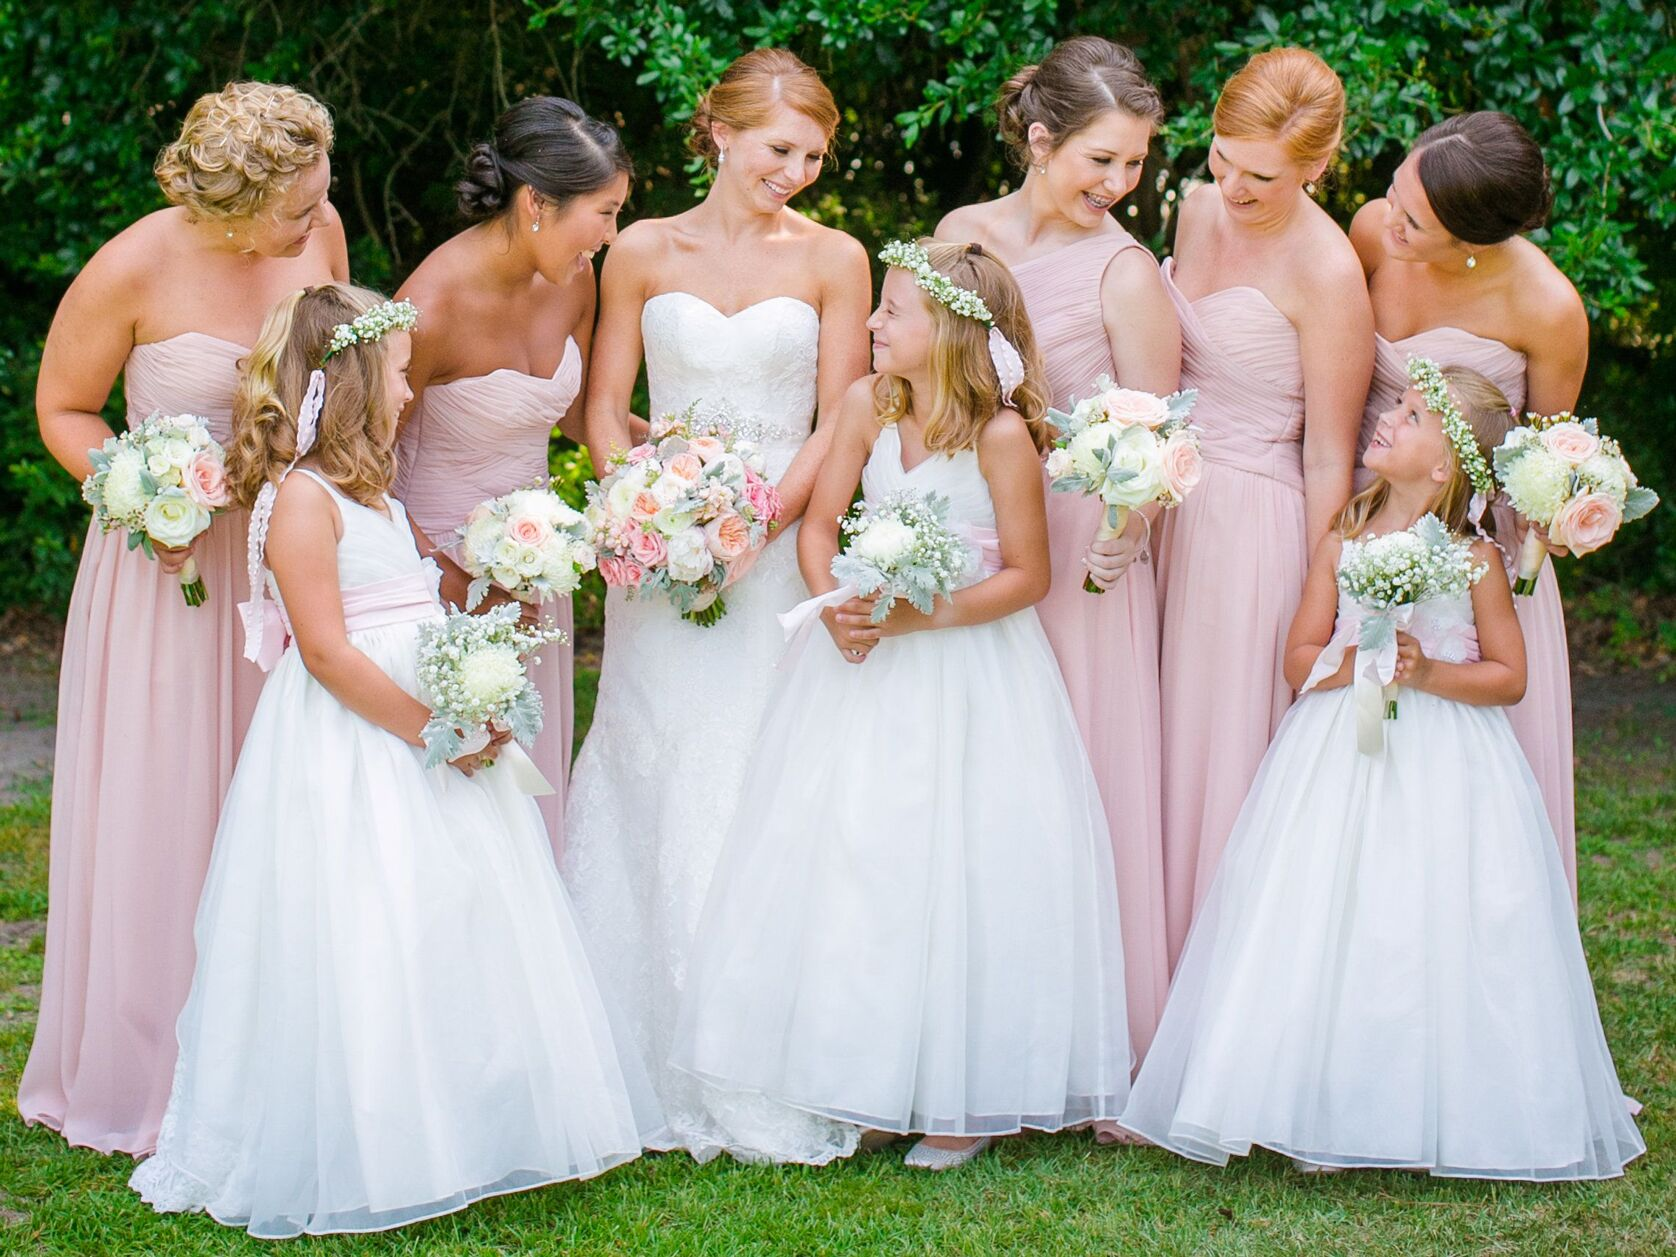 6 Junior Bridesmaid Wedding Duties in